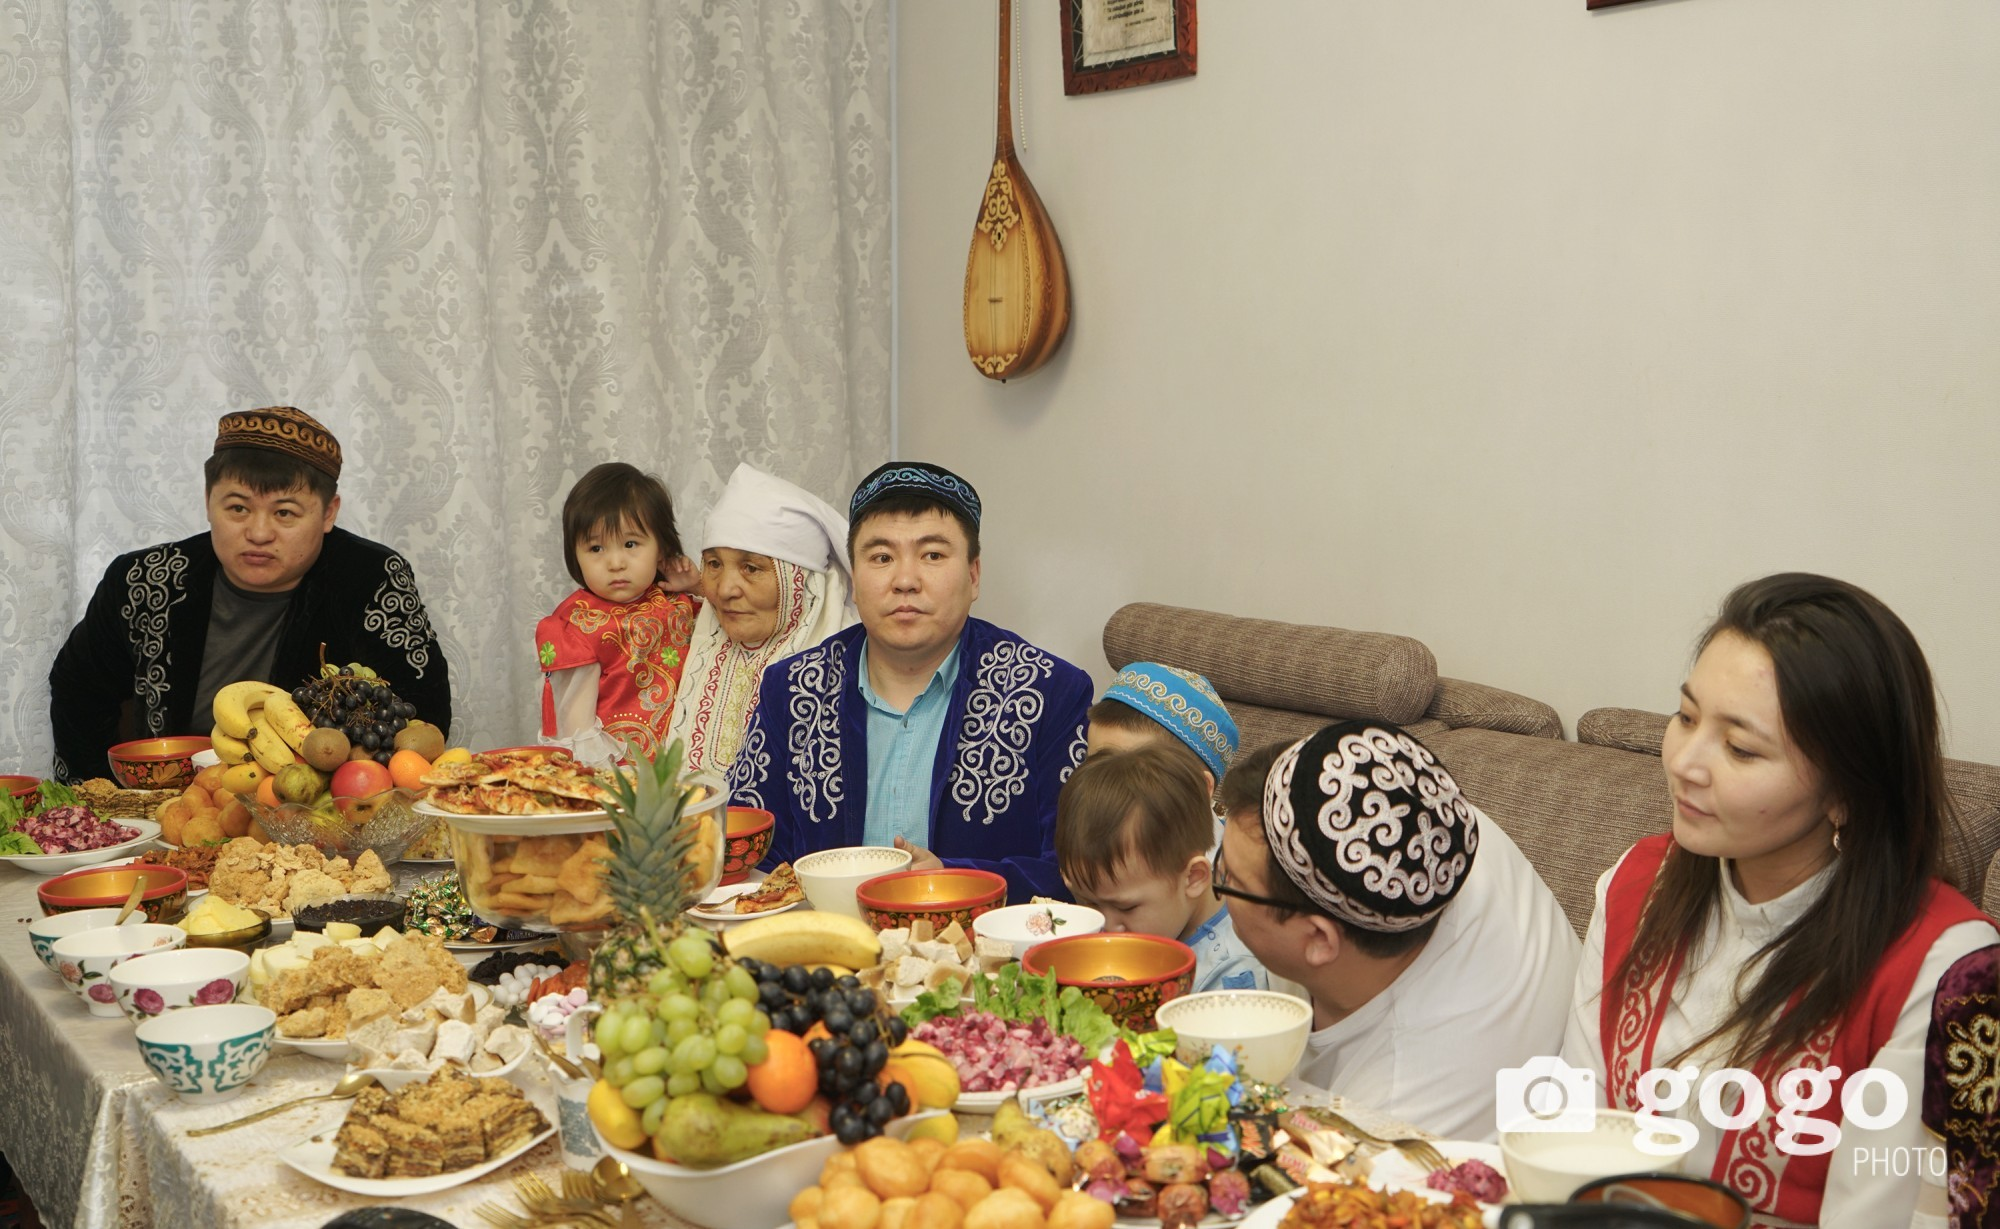 Kazakh people put on traditional clothes decorated with hand embroidery on Nawryz holiday.